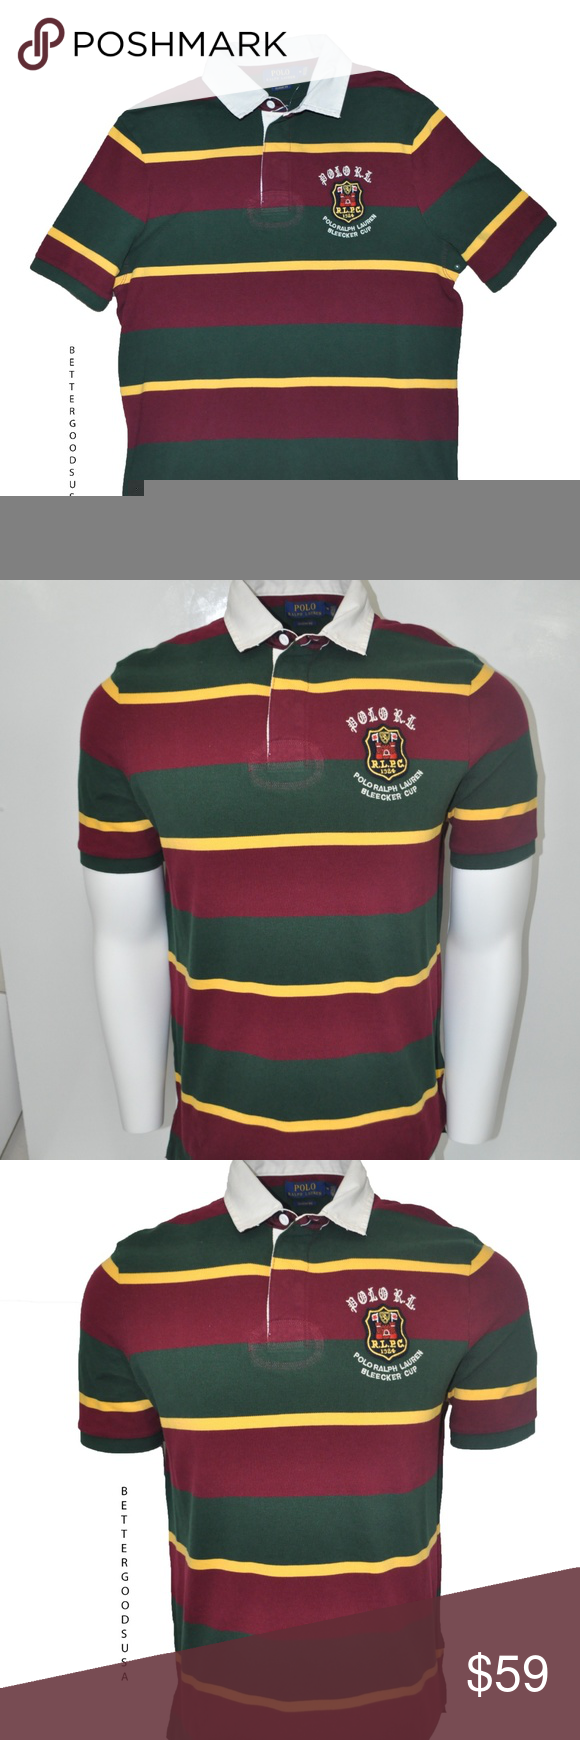 c1ba796fc Polo Ralph Lauren Rugby Polo Shirt Bleecker Cup M Brand New With The  Original Tags SIZE  MEDIUM (21